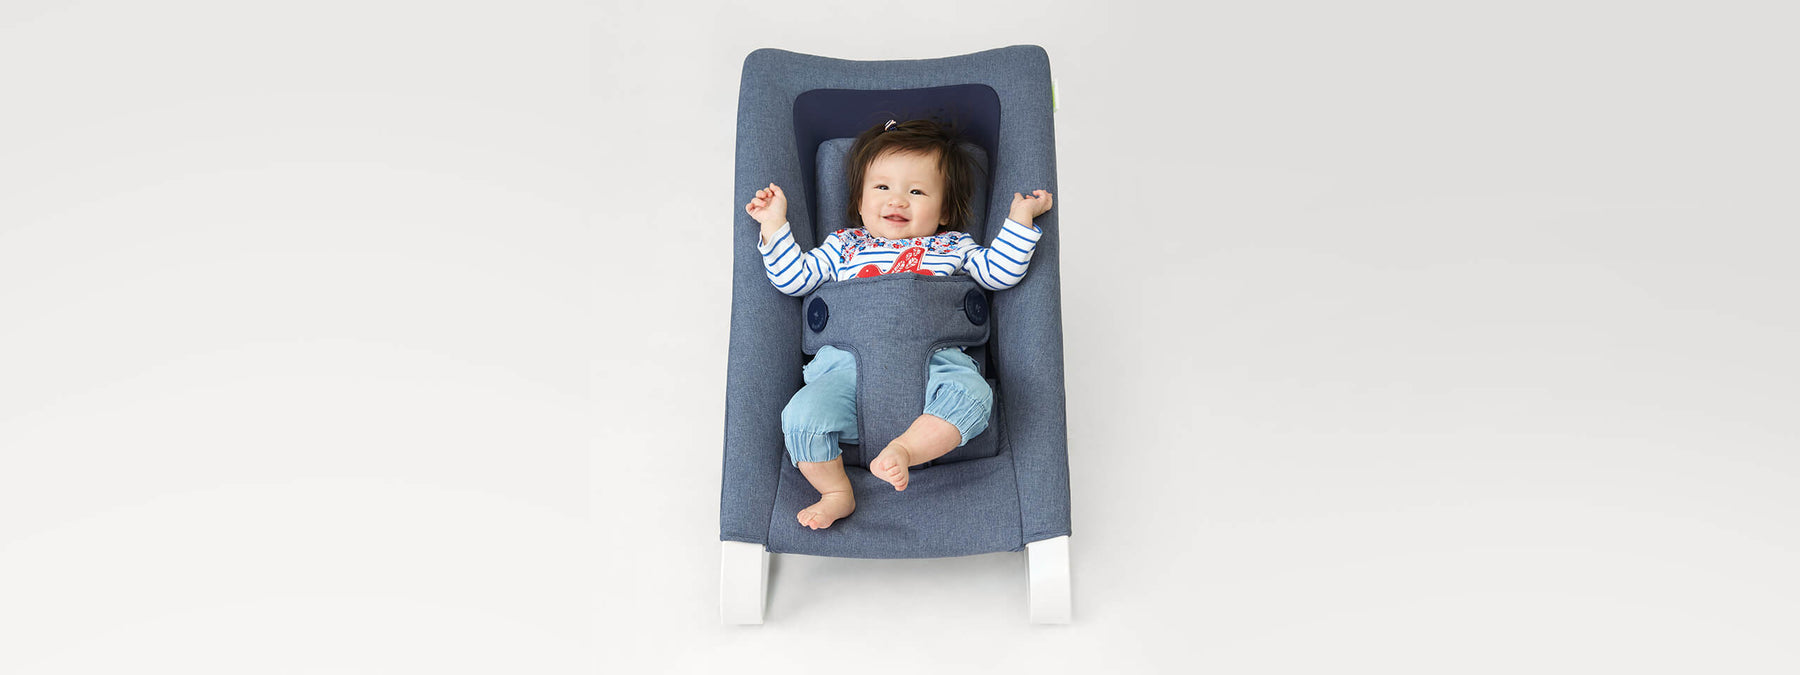 Baby Bouncer Blue Denim with baby relaxin on it